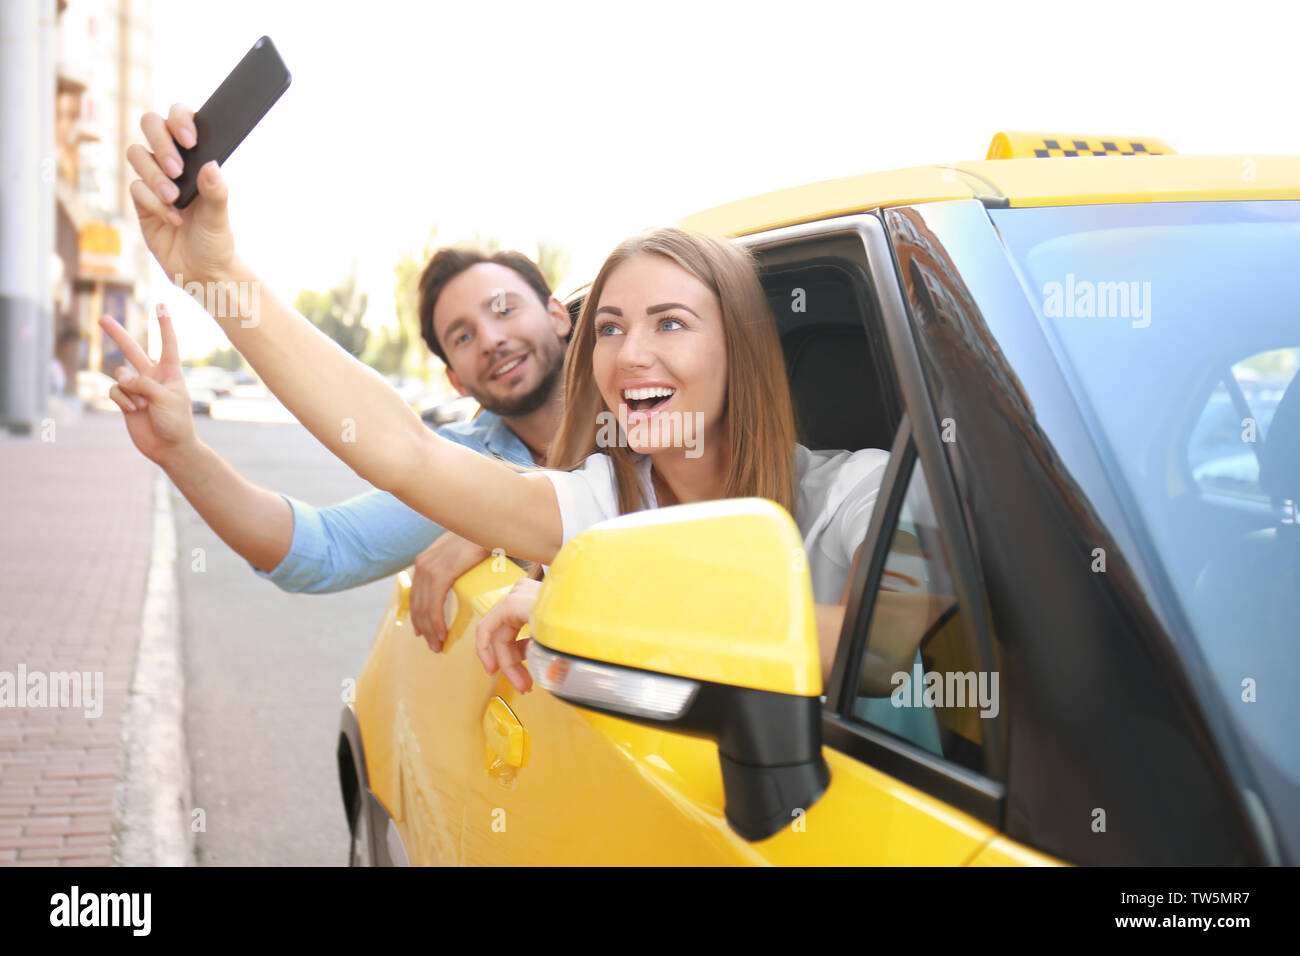 Young couple taking selfie while sitting in taxi car - Stock Image